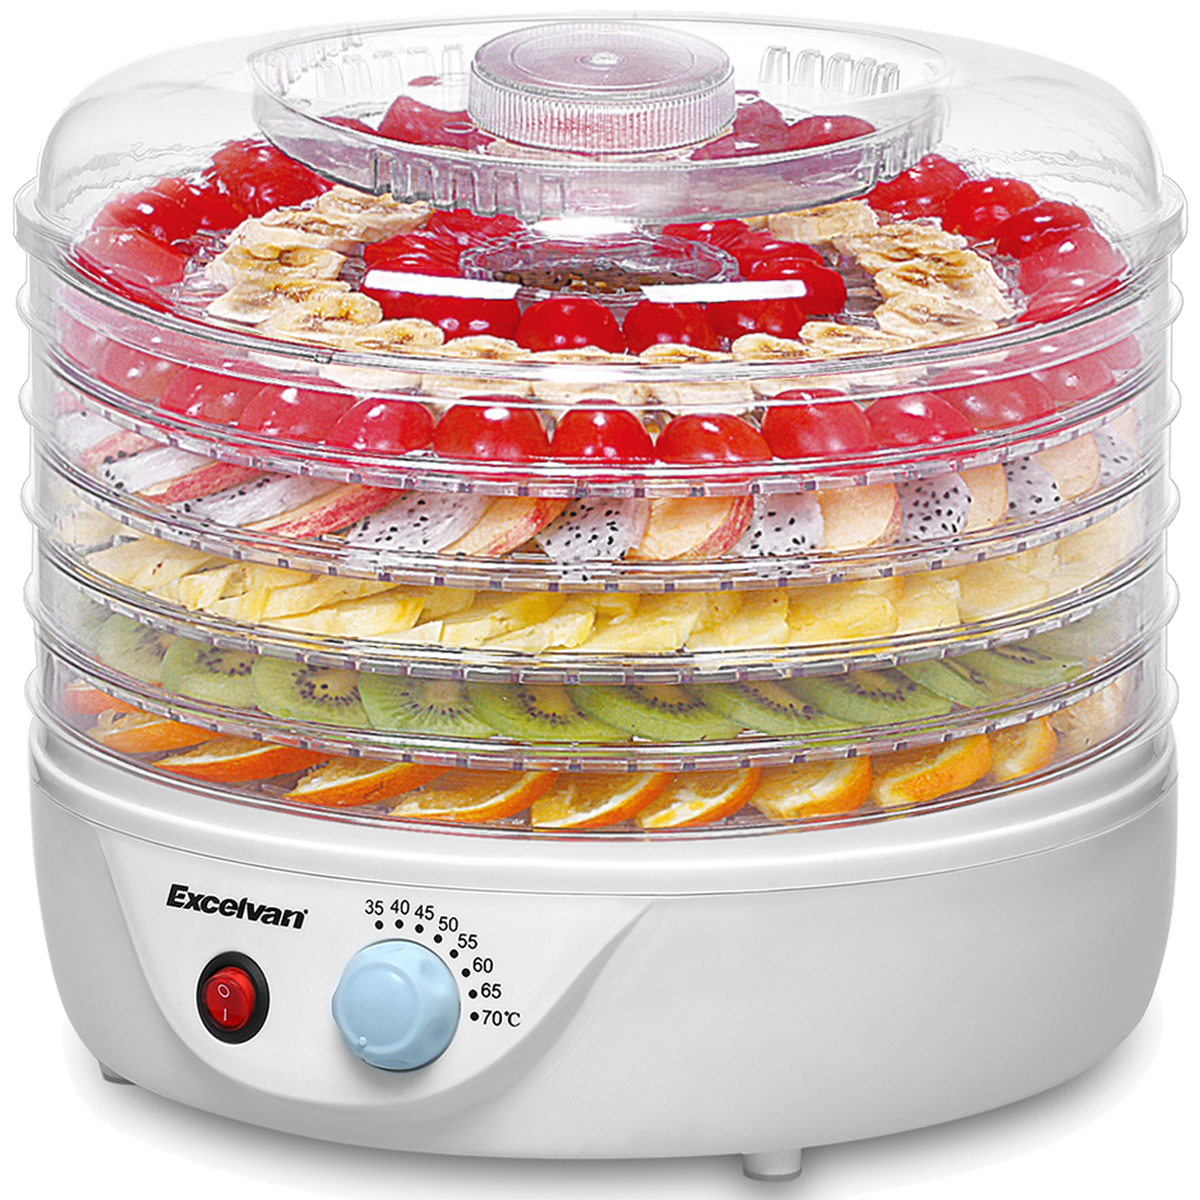 Excelvan Food Dehydrator, Food Dehydrator Machine Jerky Maker Electric fruit roll sheets Food Preserver Vegetable Flower Snack Dryer with Preserver with Adjustable Temperature Control, 5-Trays